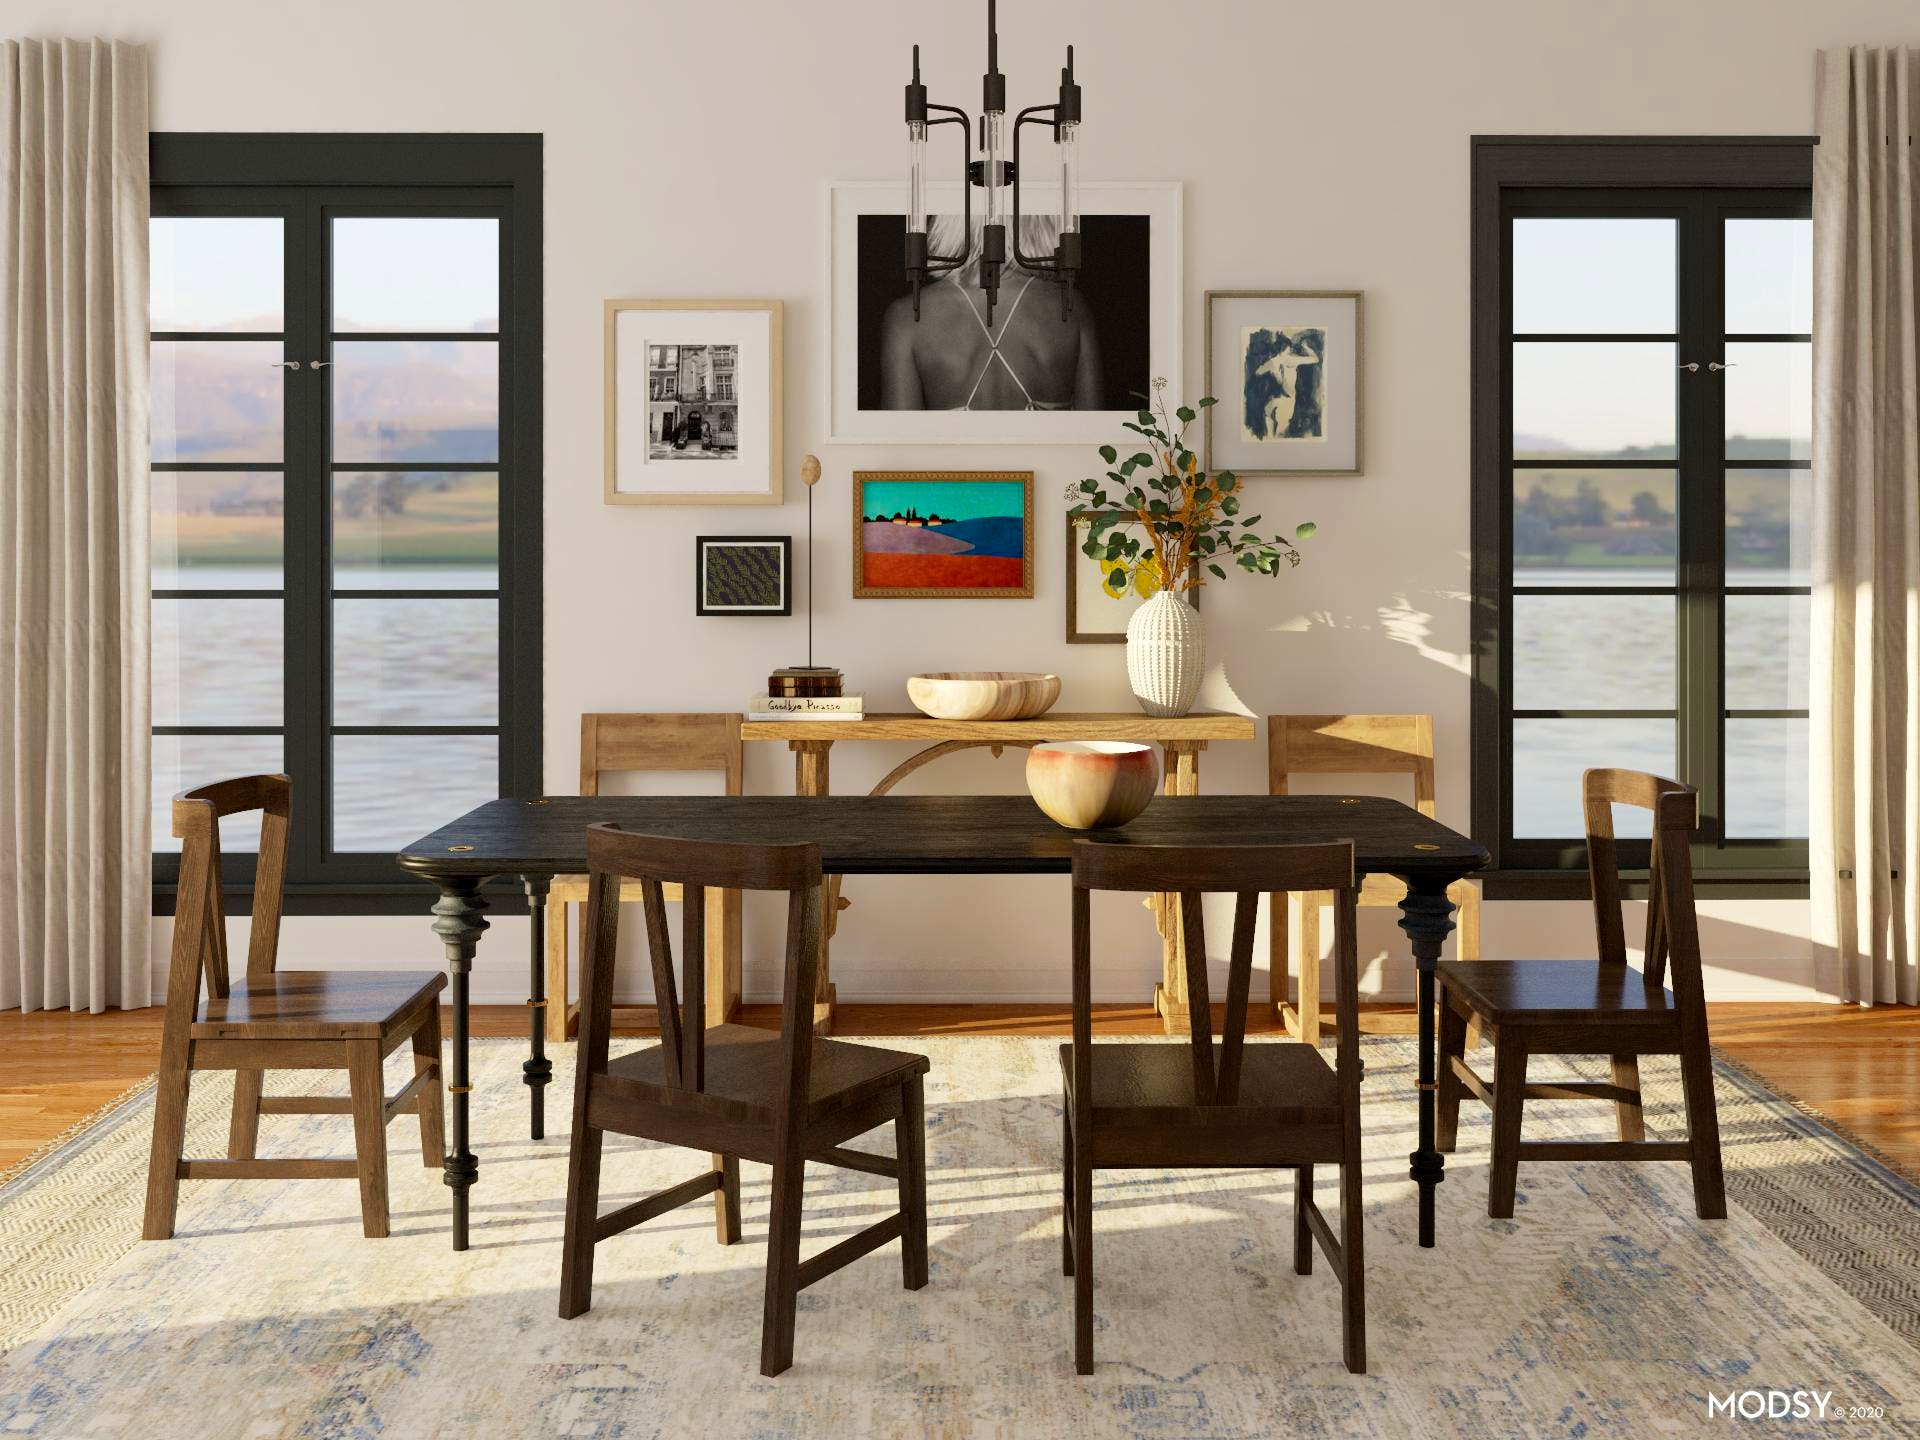 Eclectic Rustic Dining Room Design